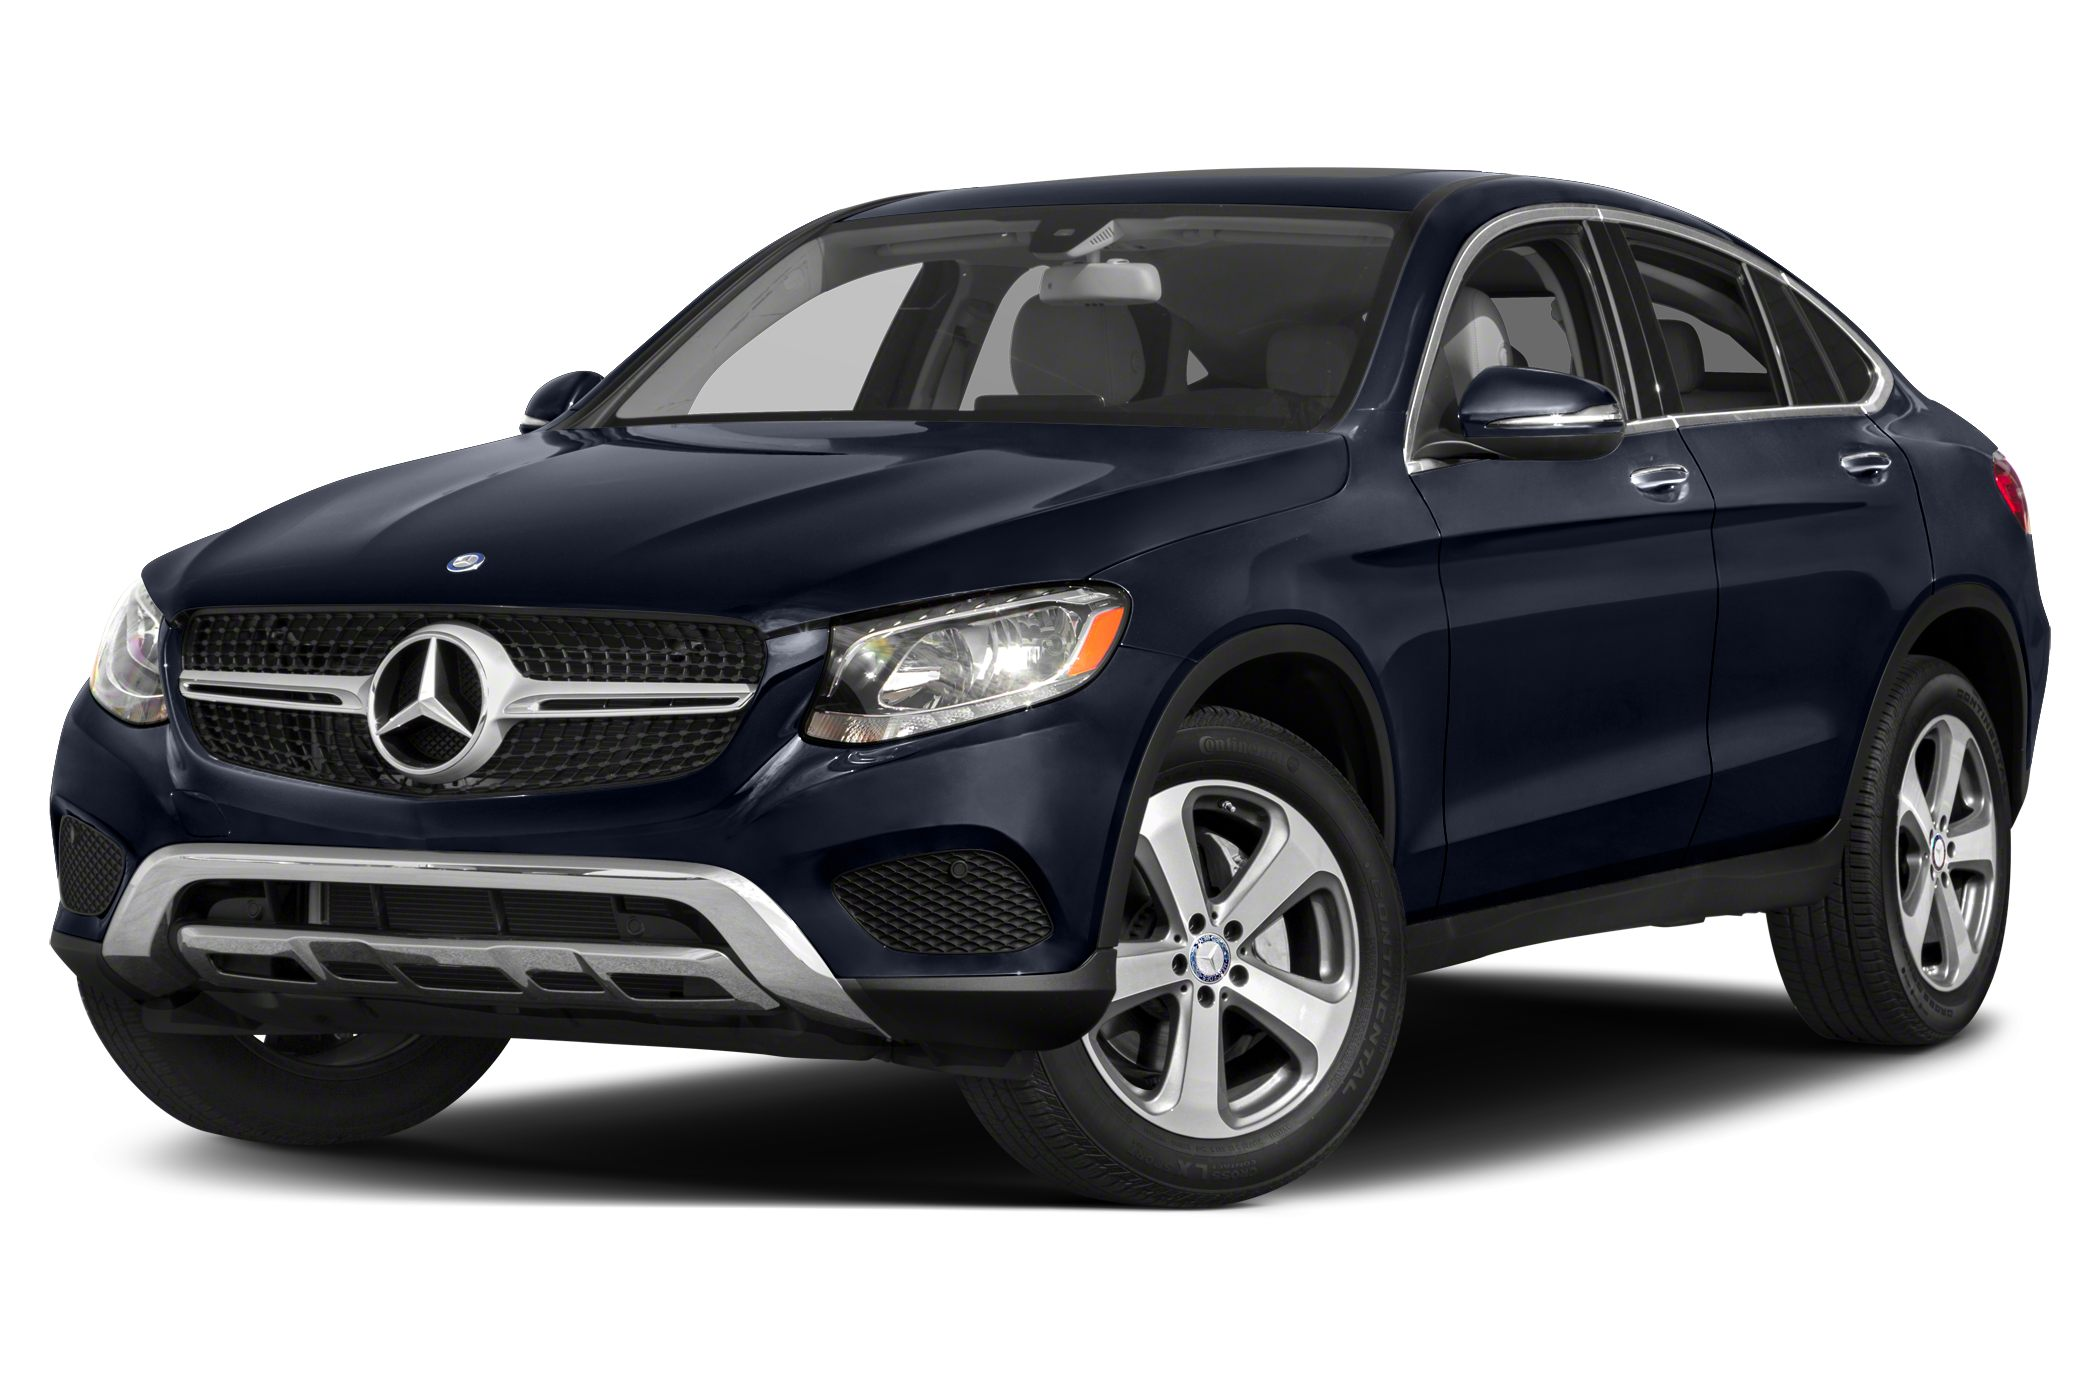 2018 Mercedes Benz GLC 300 Base GLC 300 Coupe 4dr All wheel Drive 4MATIC Pricing and Options